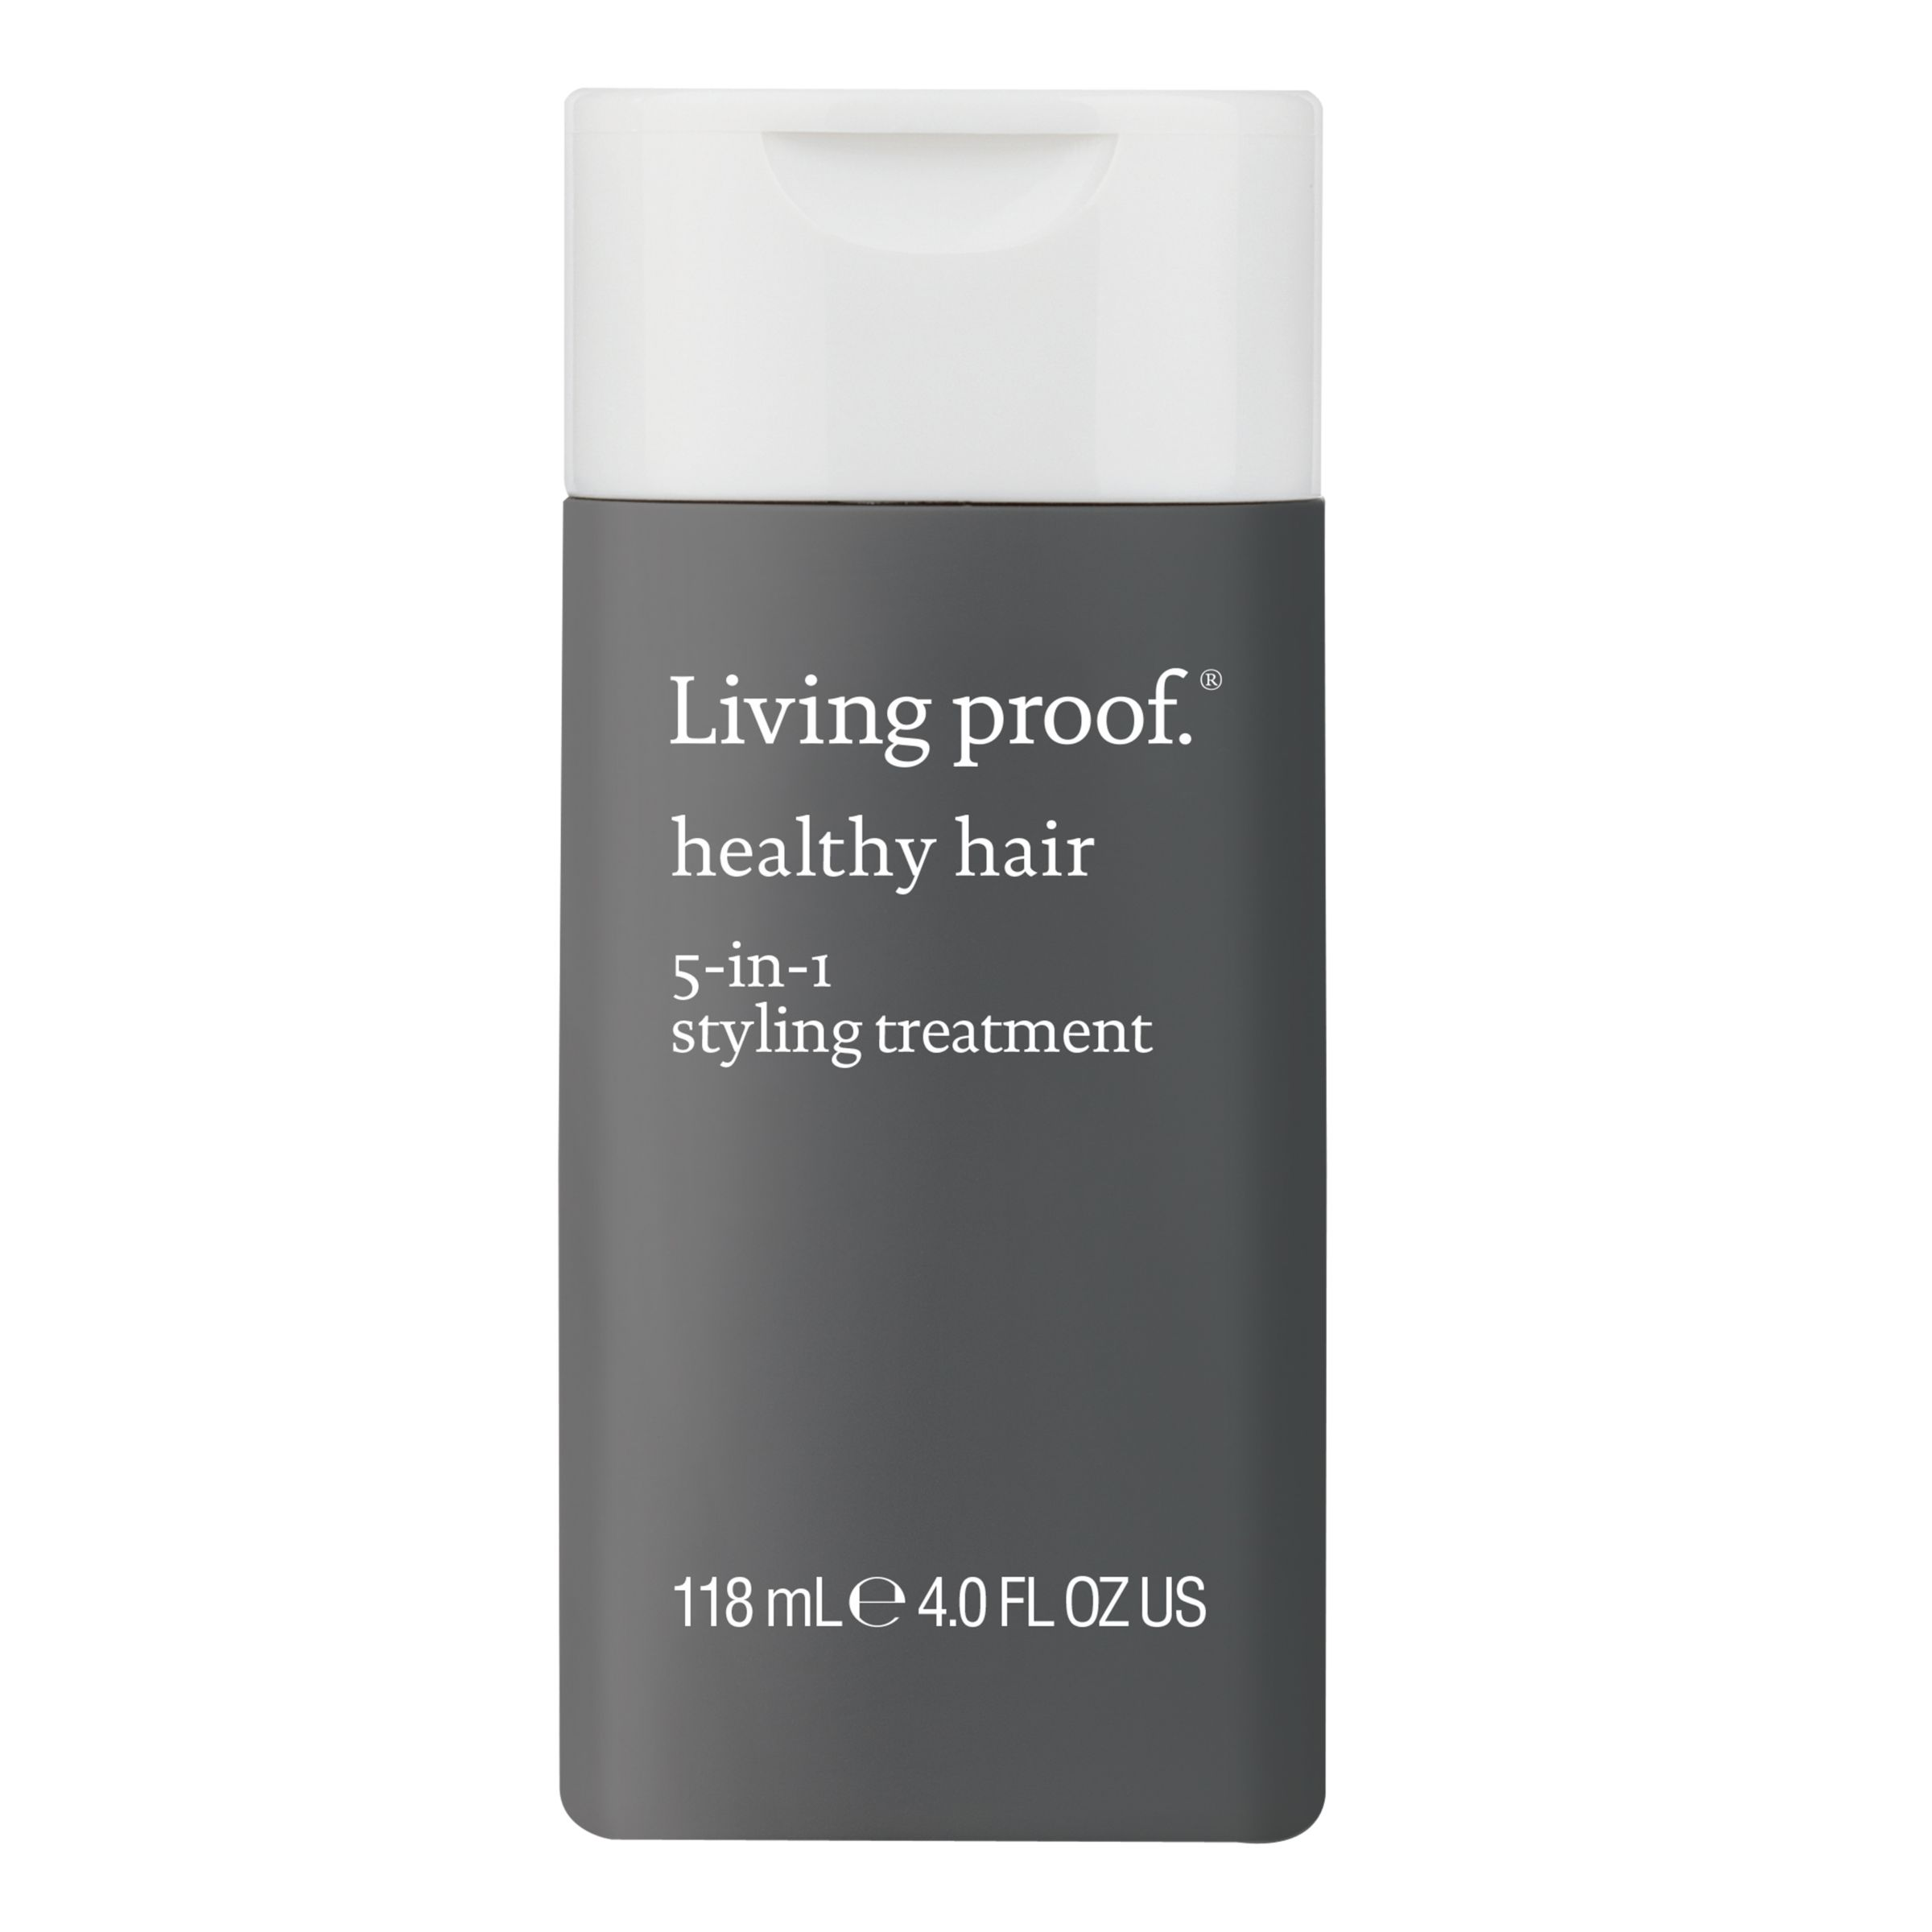 Living Proof Living Proof Healthy Hair 5-in-1 Styling Treatment